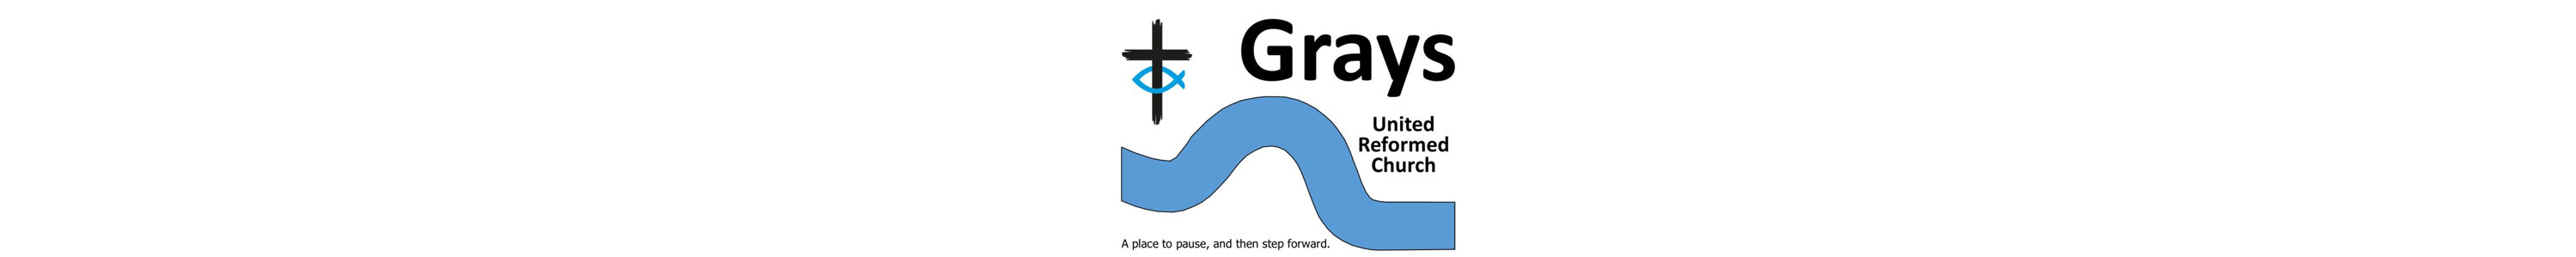 Grays United Reformed Church